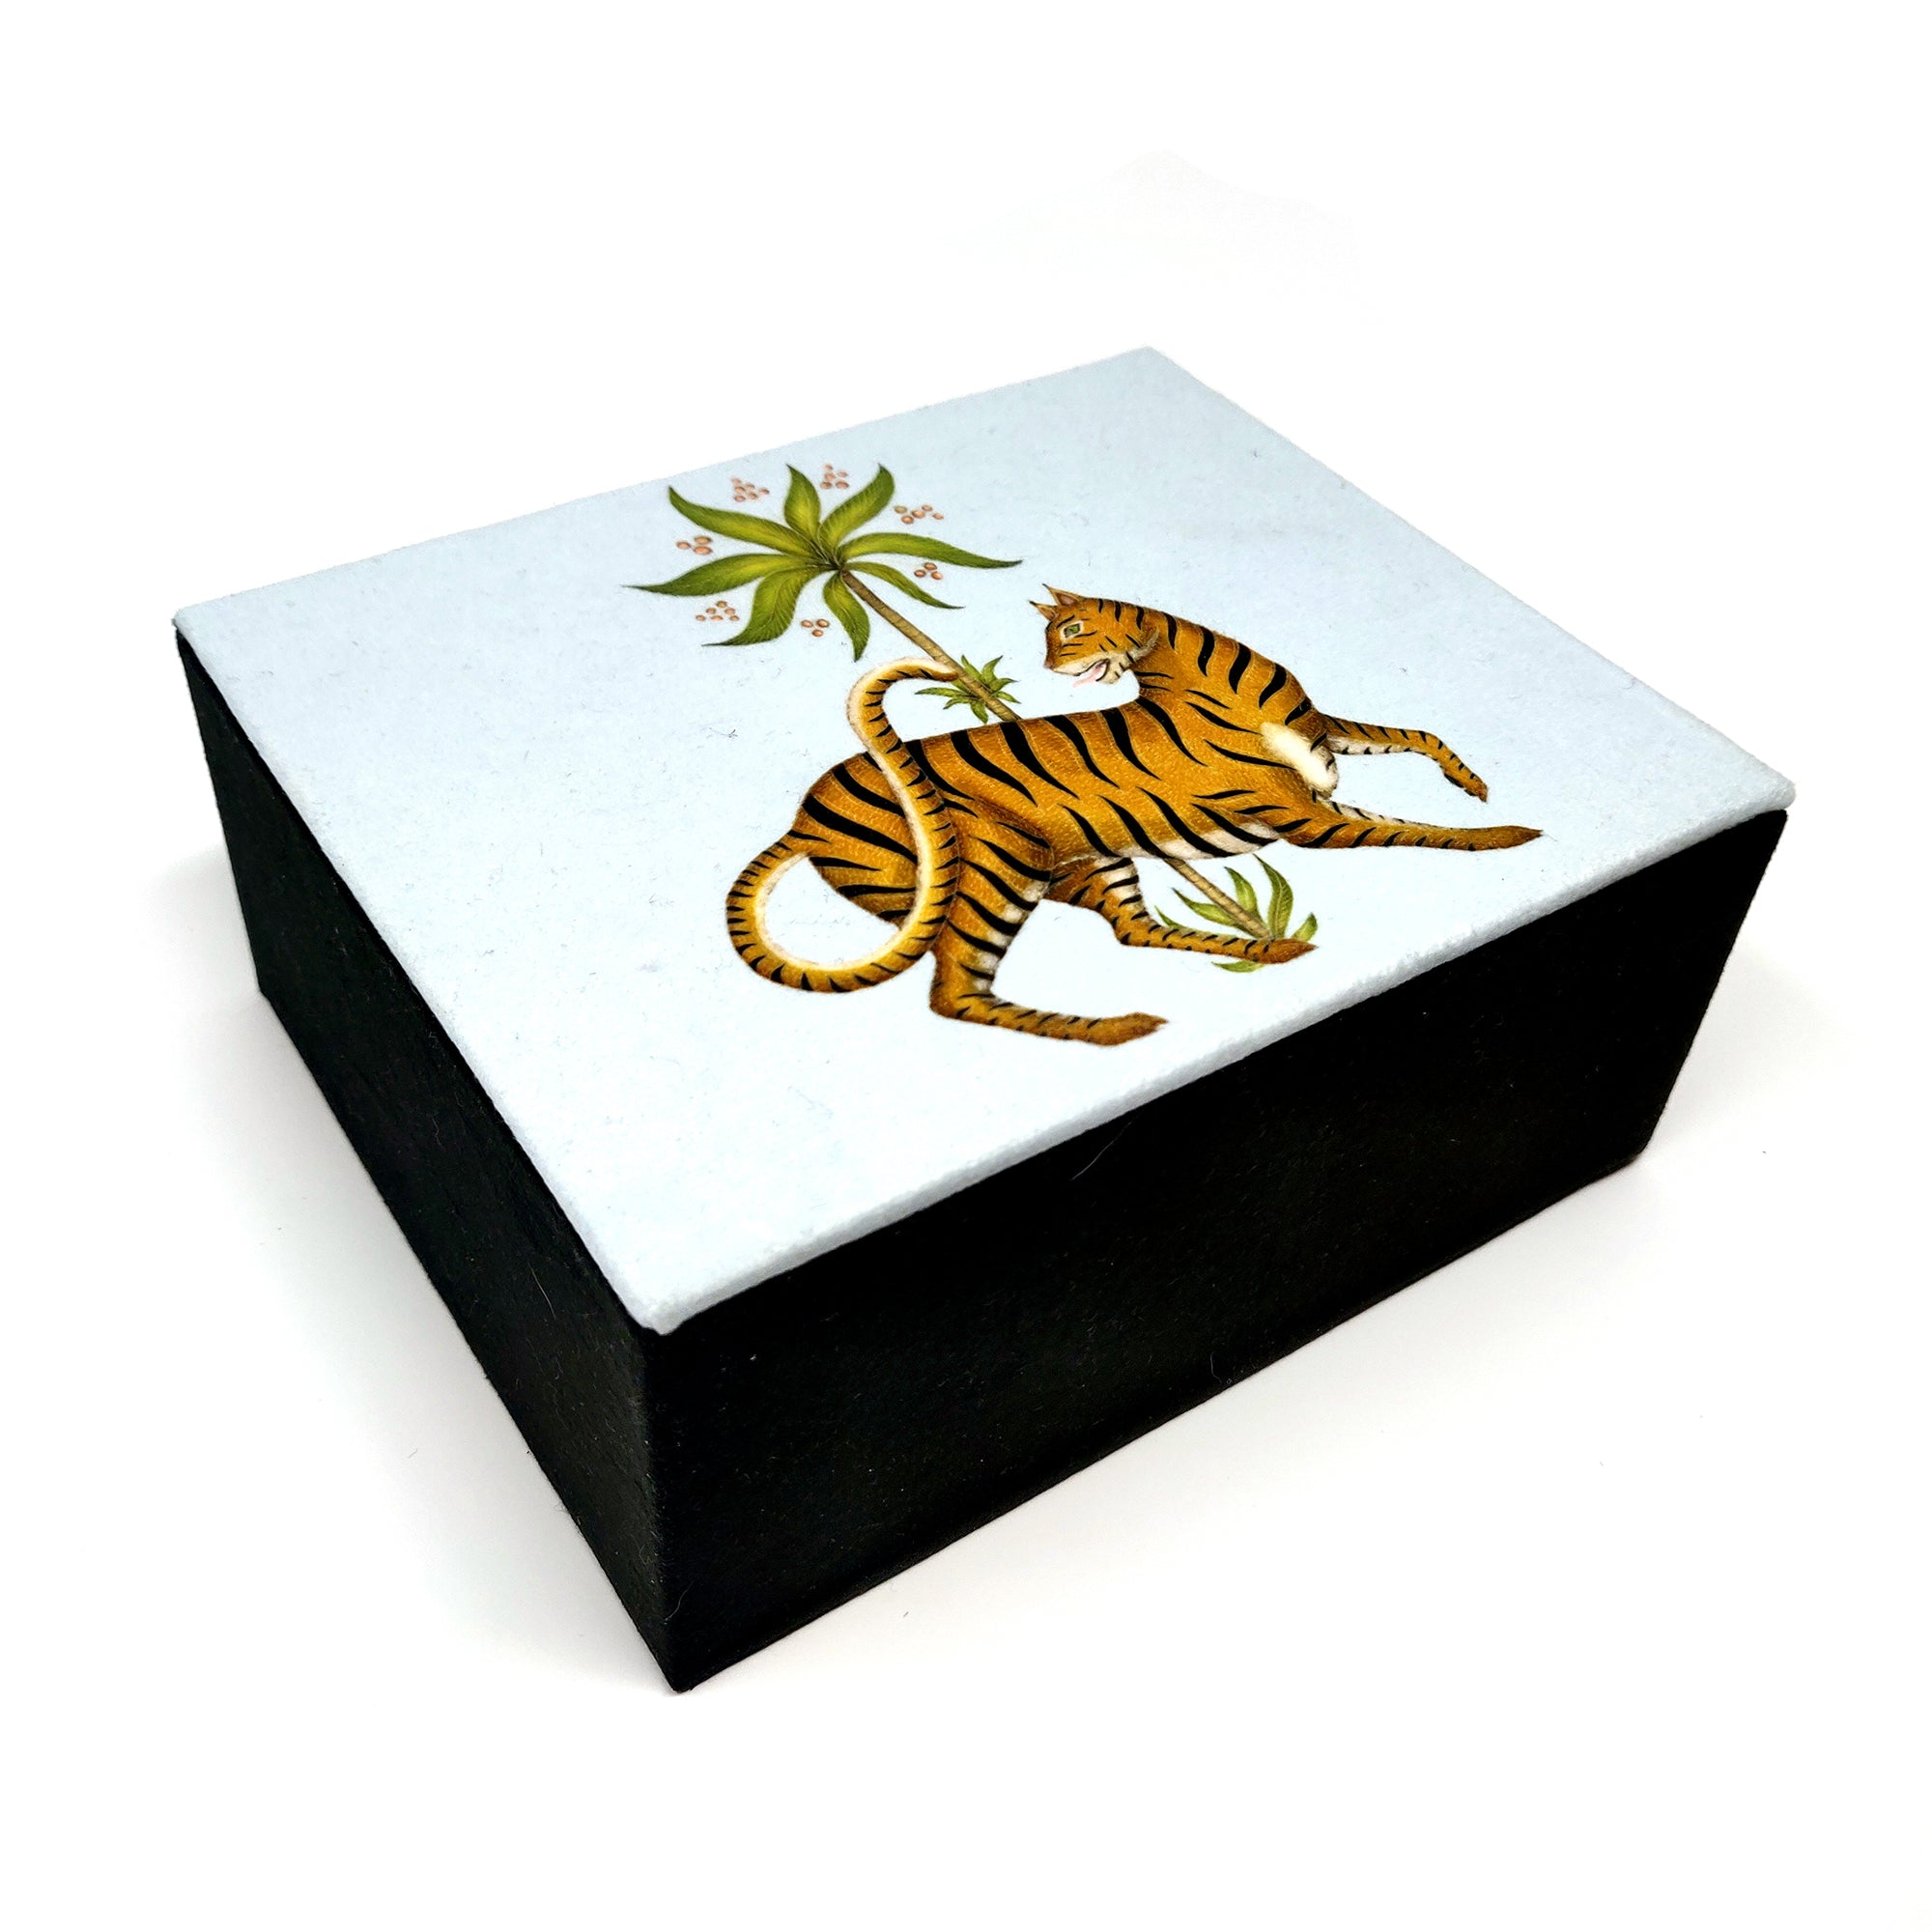 Luxurious Jewellery Box in Tiger & Palms Design